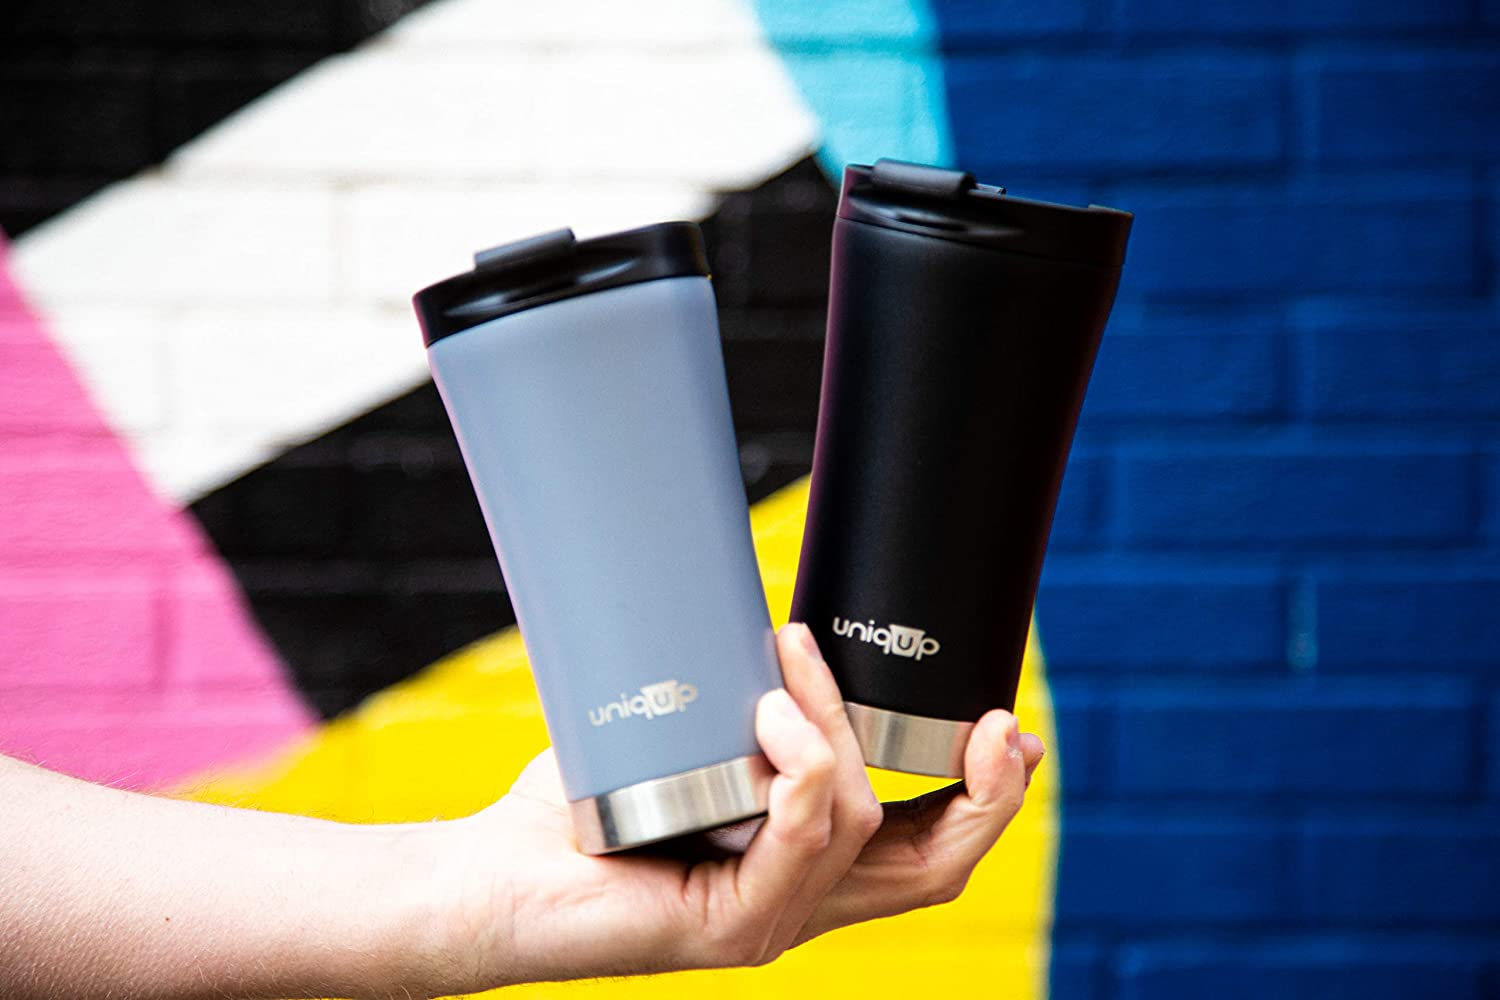 Tea or Coffee Flask for Hot Drinks Black, 340ml Premium Insulated Reusable Coffee Cup Uniqup Leak Proof Travel Mug